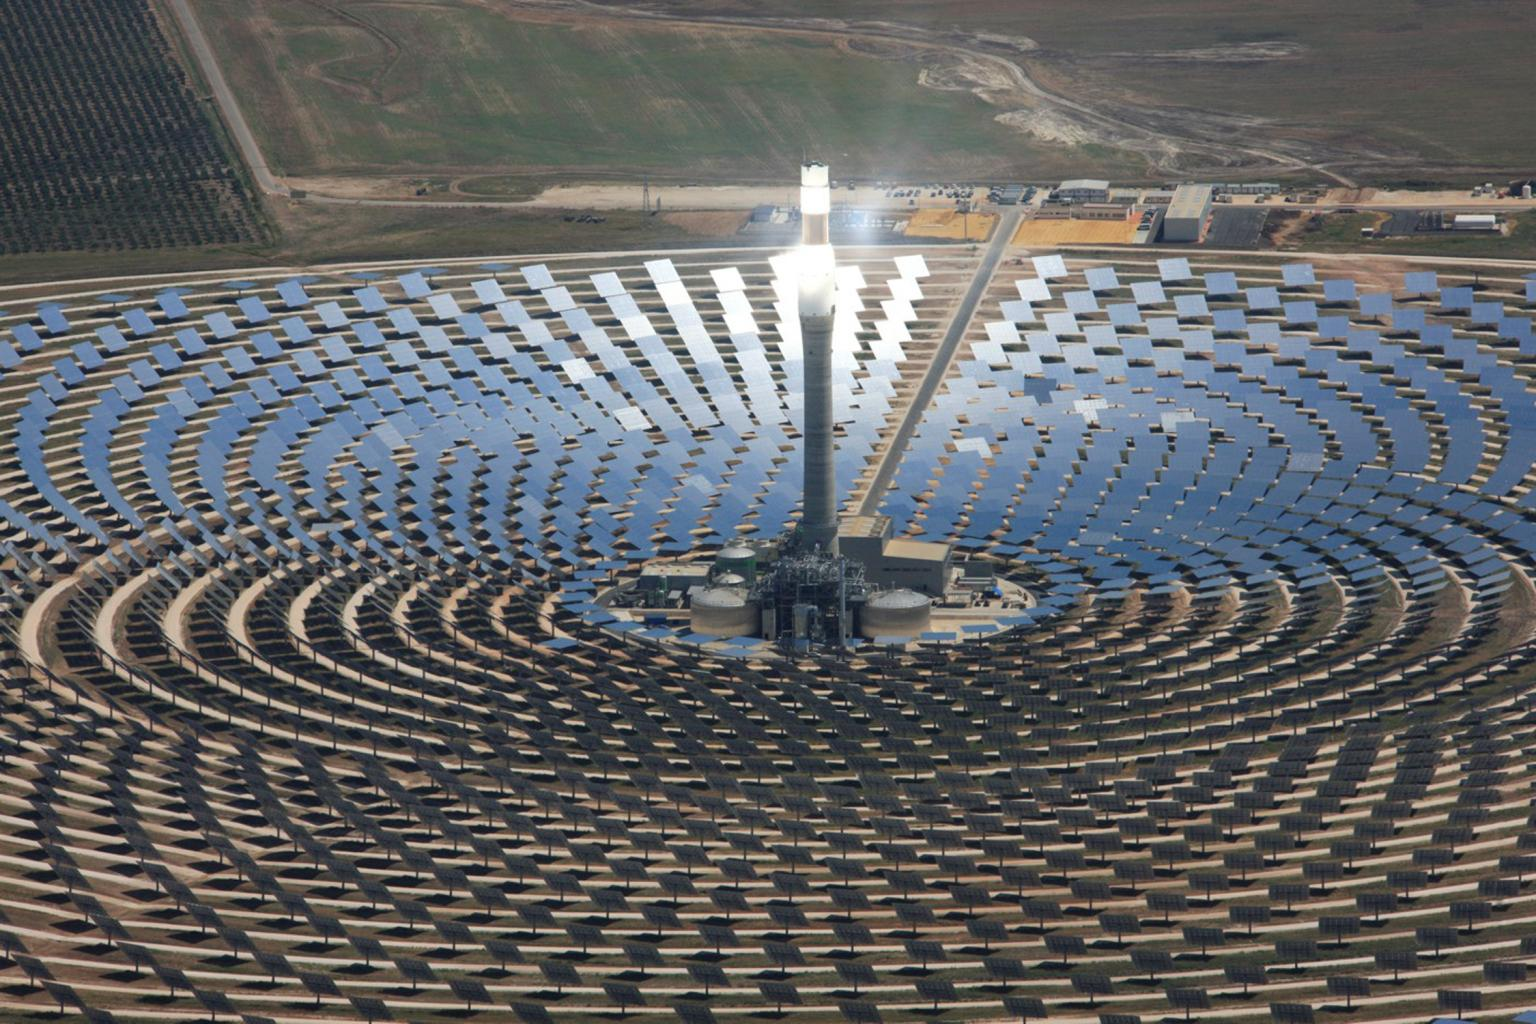 Thermodynamic solar power is being considered for multiple sites around the world following a successful trial of the technology outside Seville in Spain